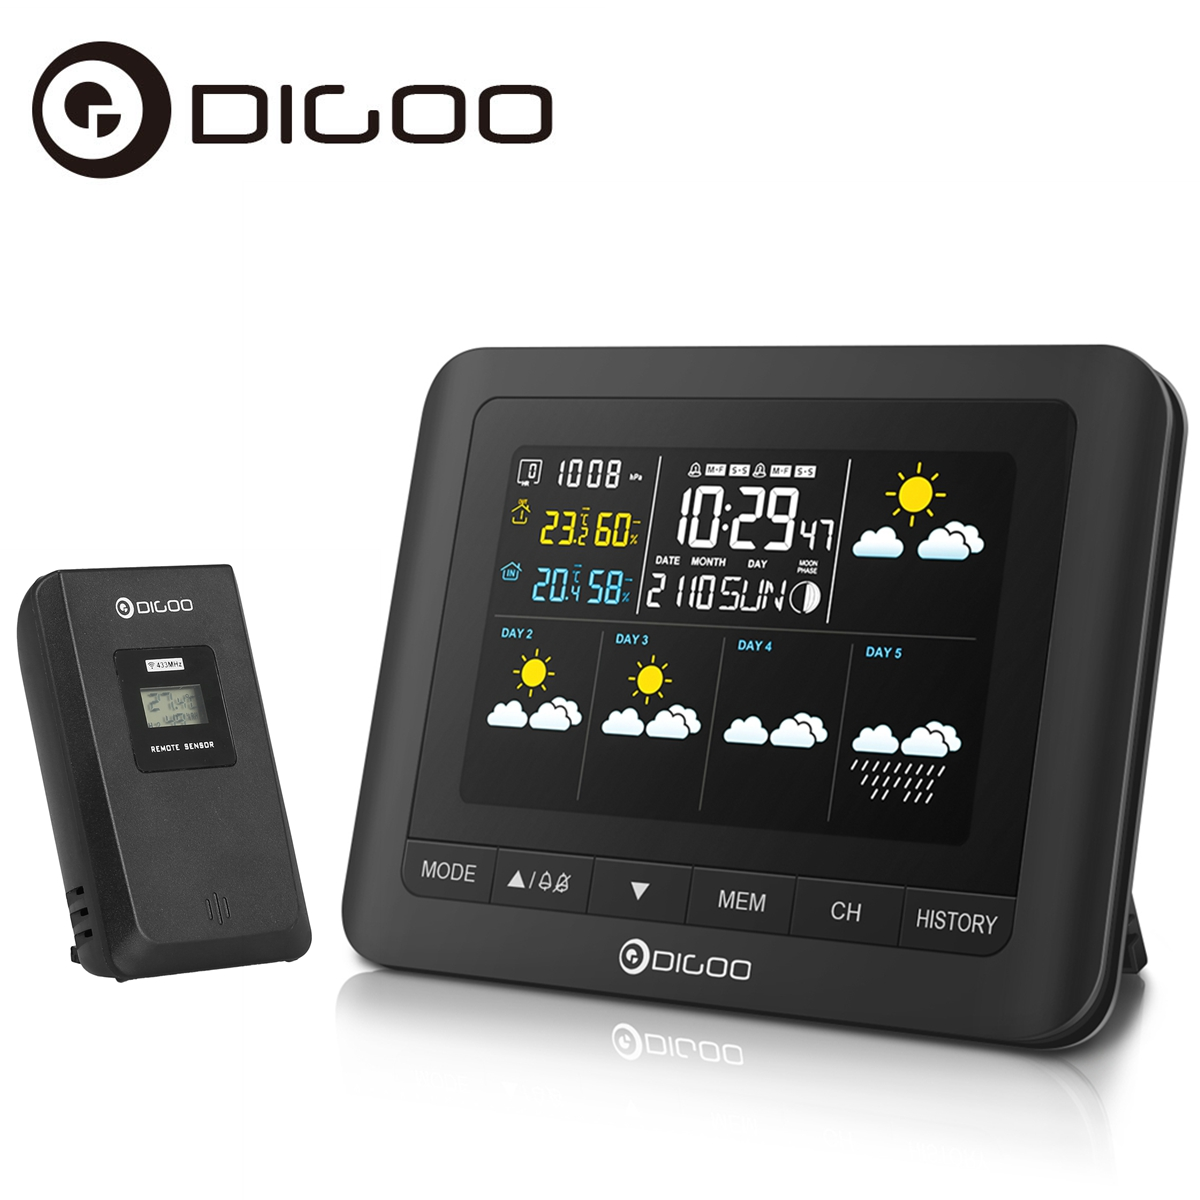 Digoo DG-TH8805 Wireless moon phase Five Day Forecast Weather Station Digital Full-Color Screen Indoor Outdoor... by